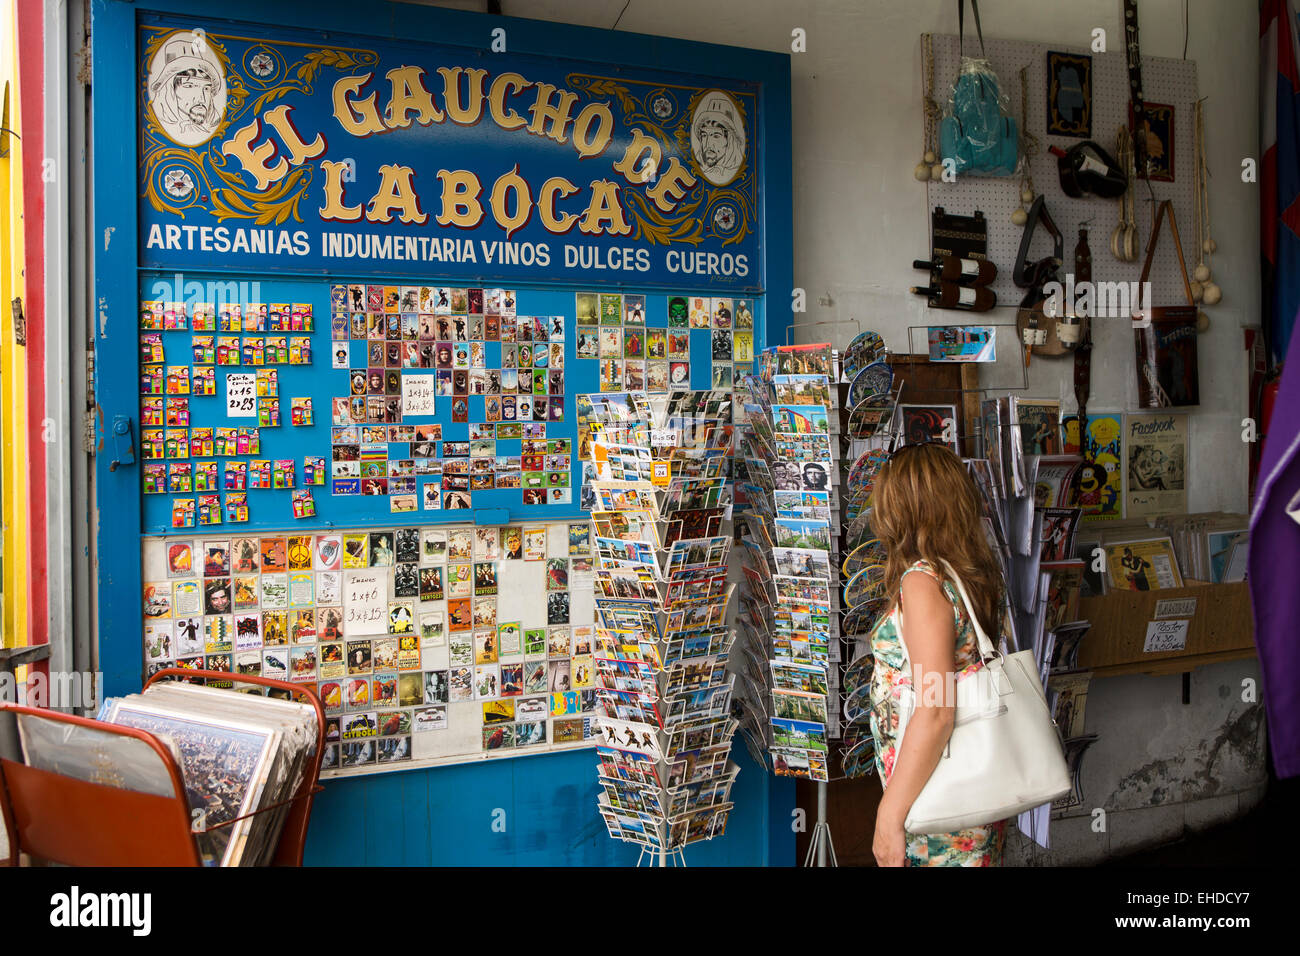 Argentina, Buenos Aires, La Boca, Magallenes, woman in souvenir shop browsing postcards - Stock Image